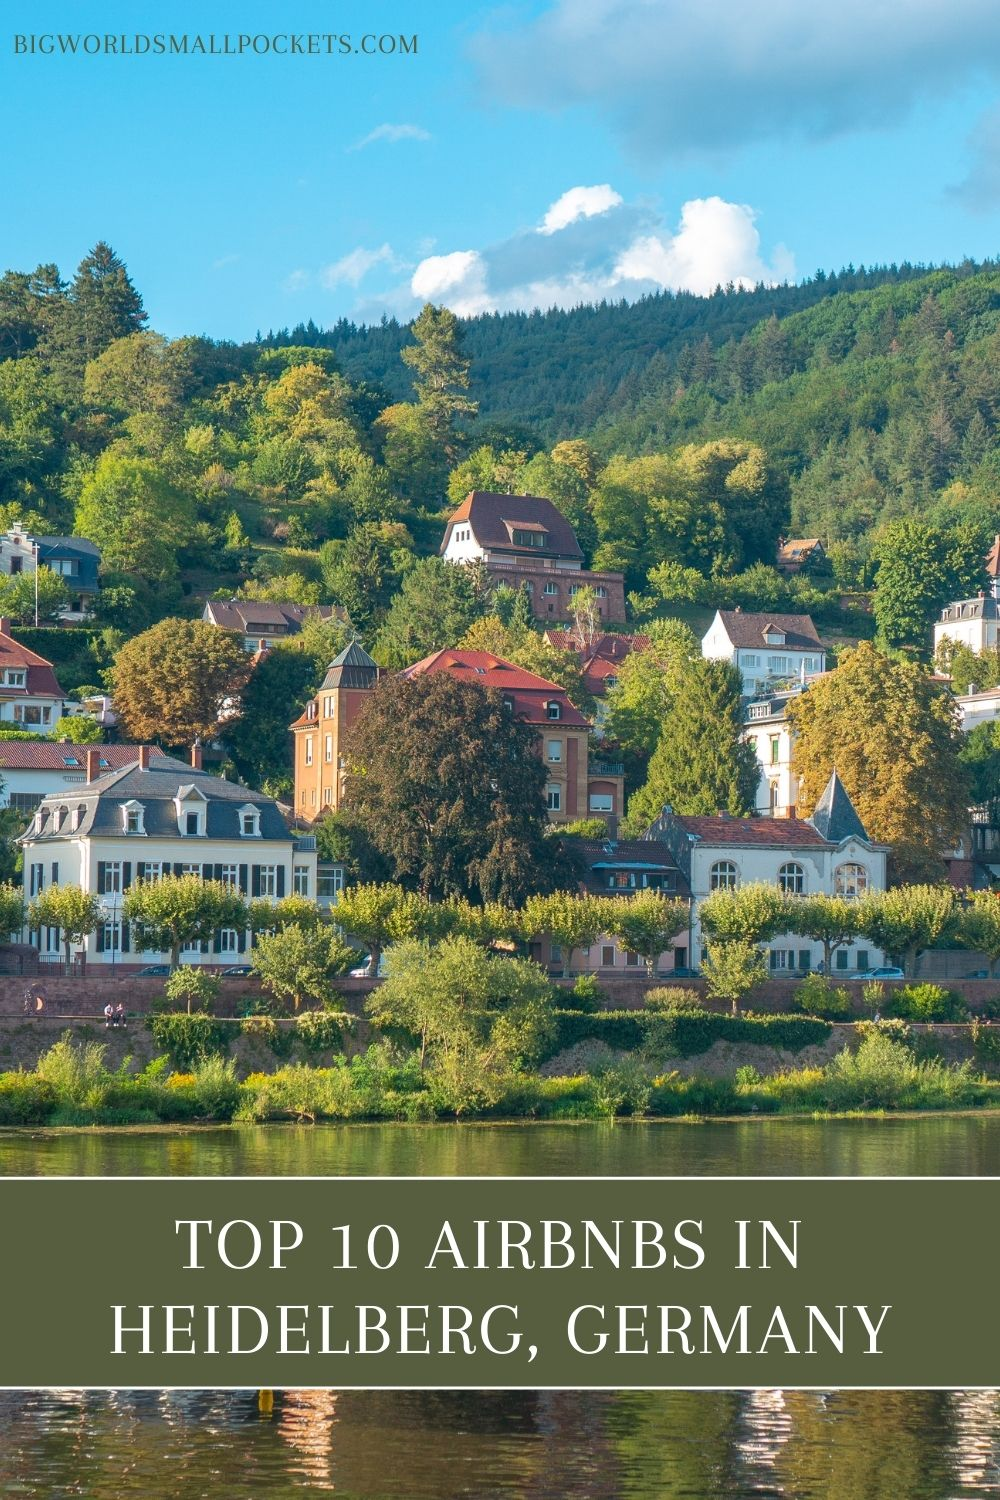 10 Best Airbnbs in Heidelberg, Germany